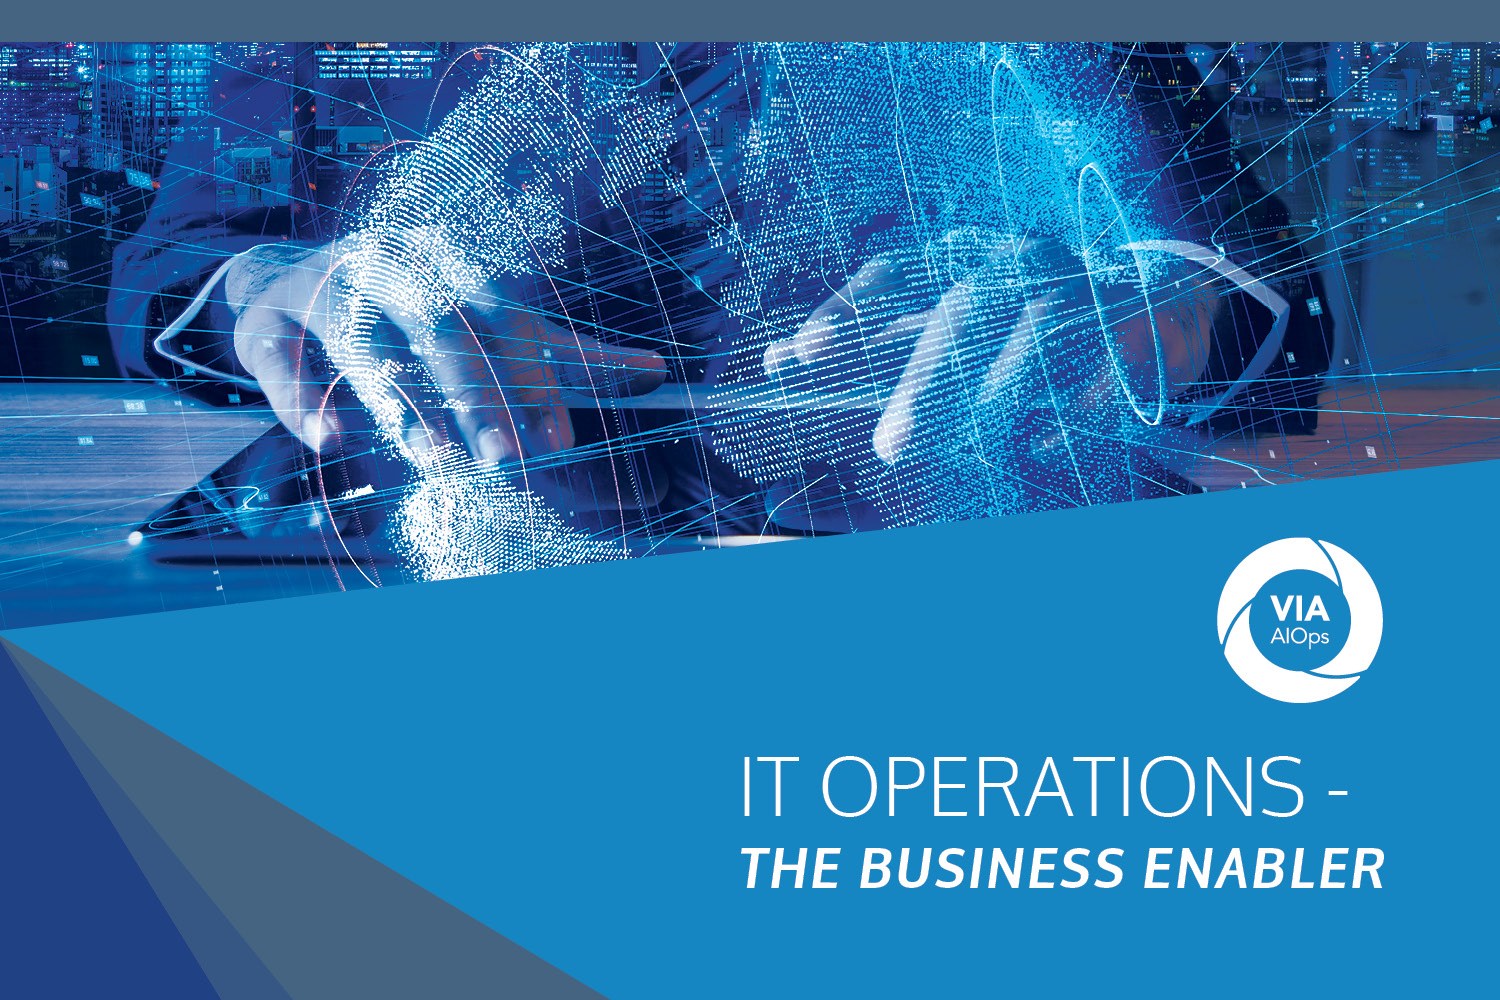 Download the Guide: IT Operations - The Business Enabler